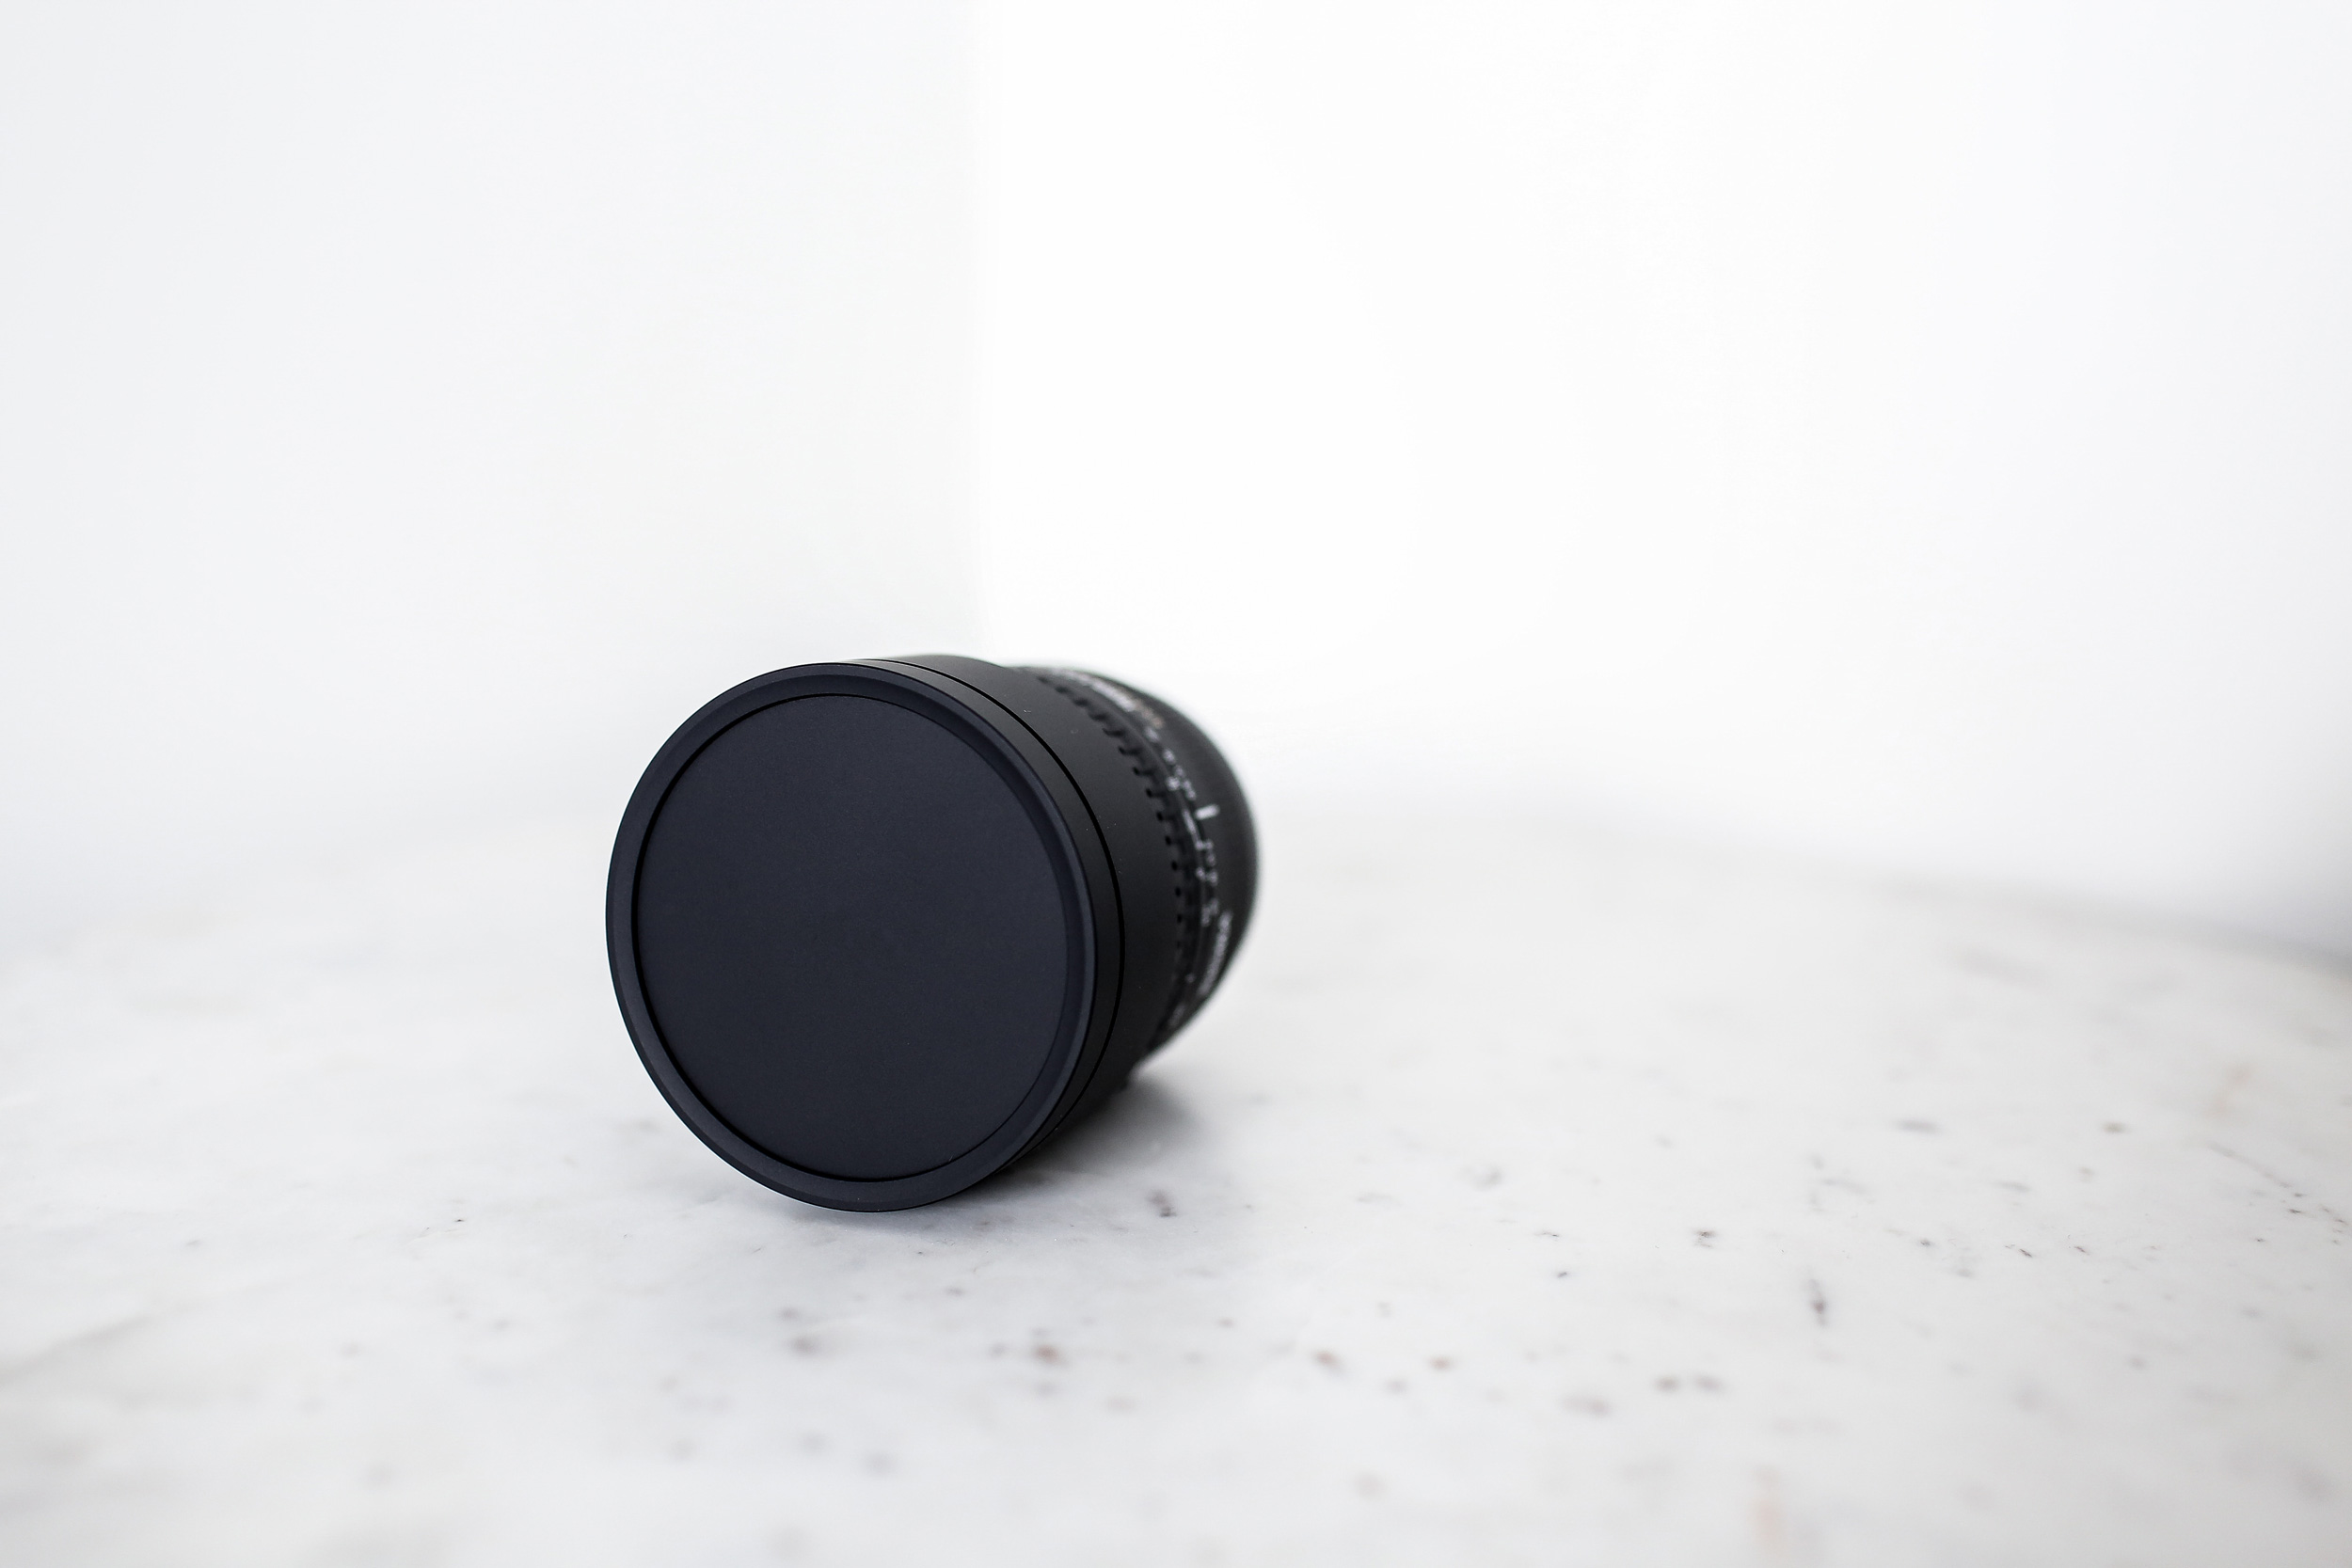 Whoops - Looks like your lens cap is still on.